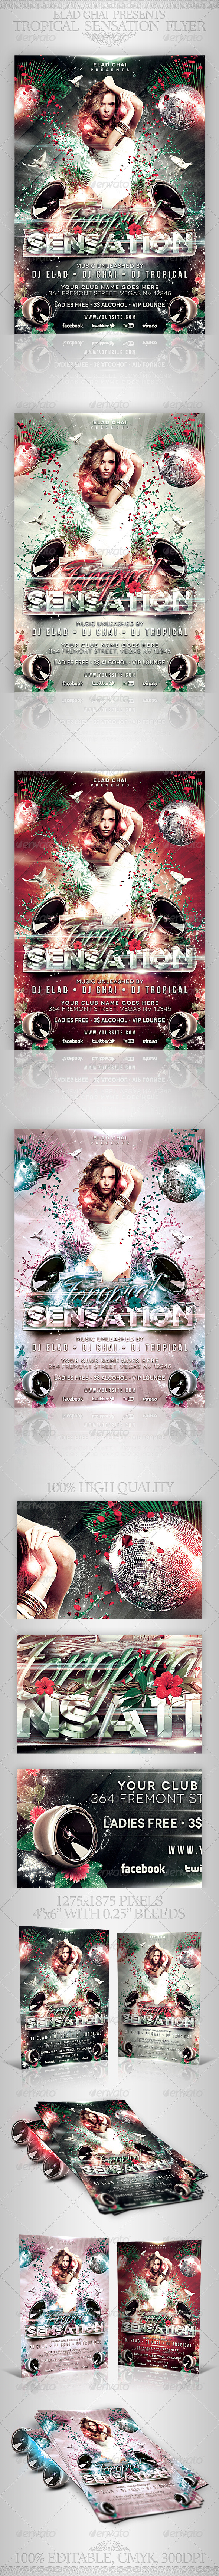 GraphicRiver Tropical Sensation Party Flyer Template 2629649